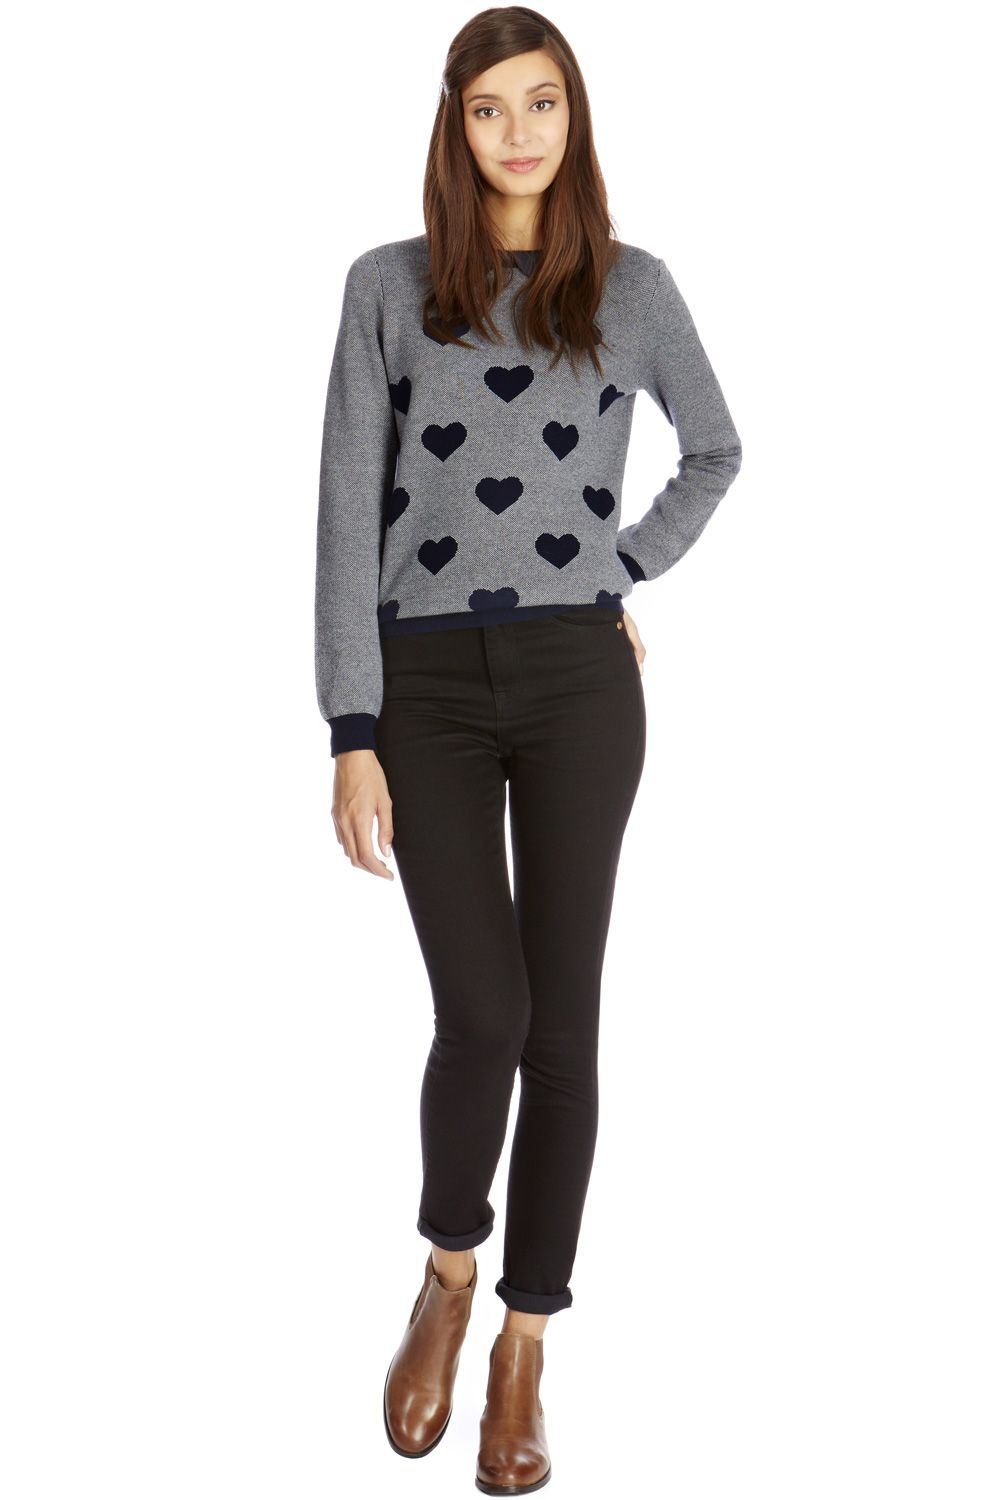 Heart collar jumper